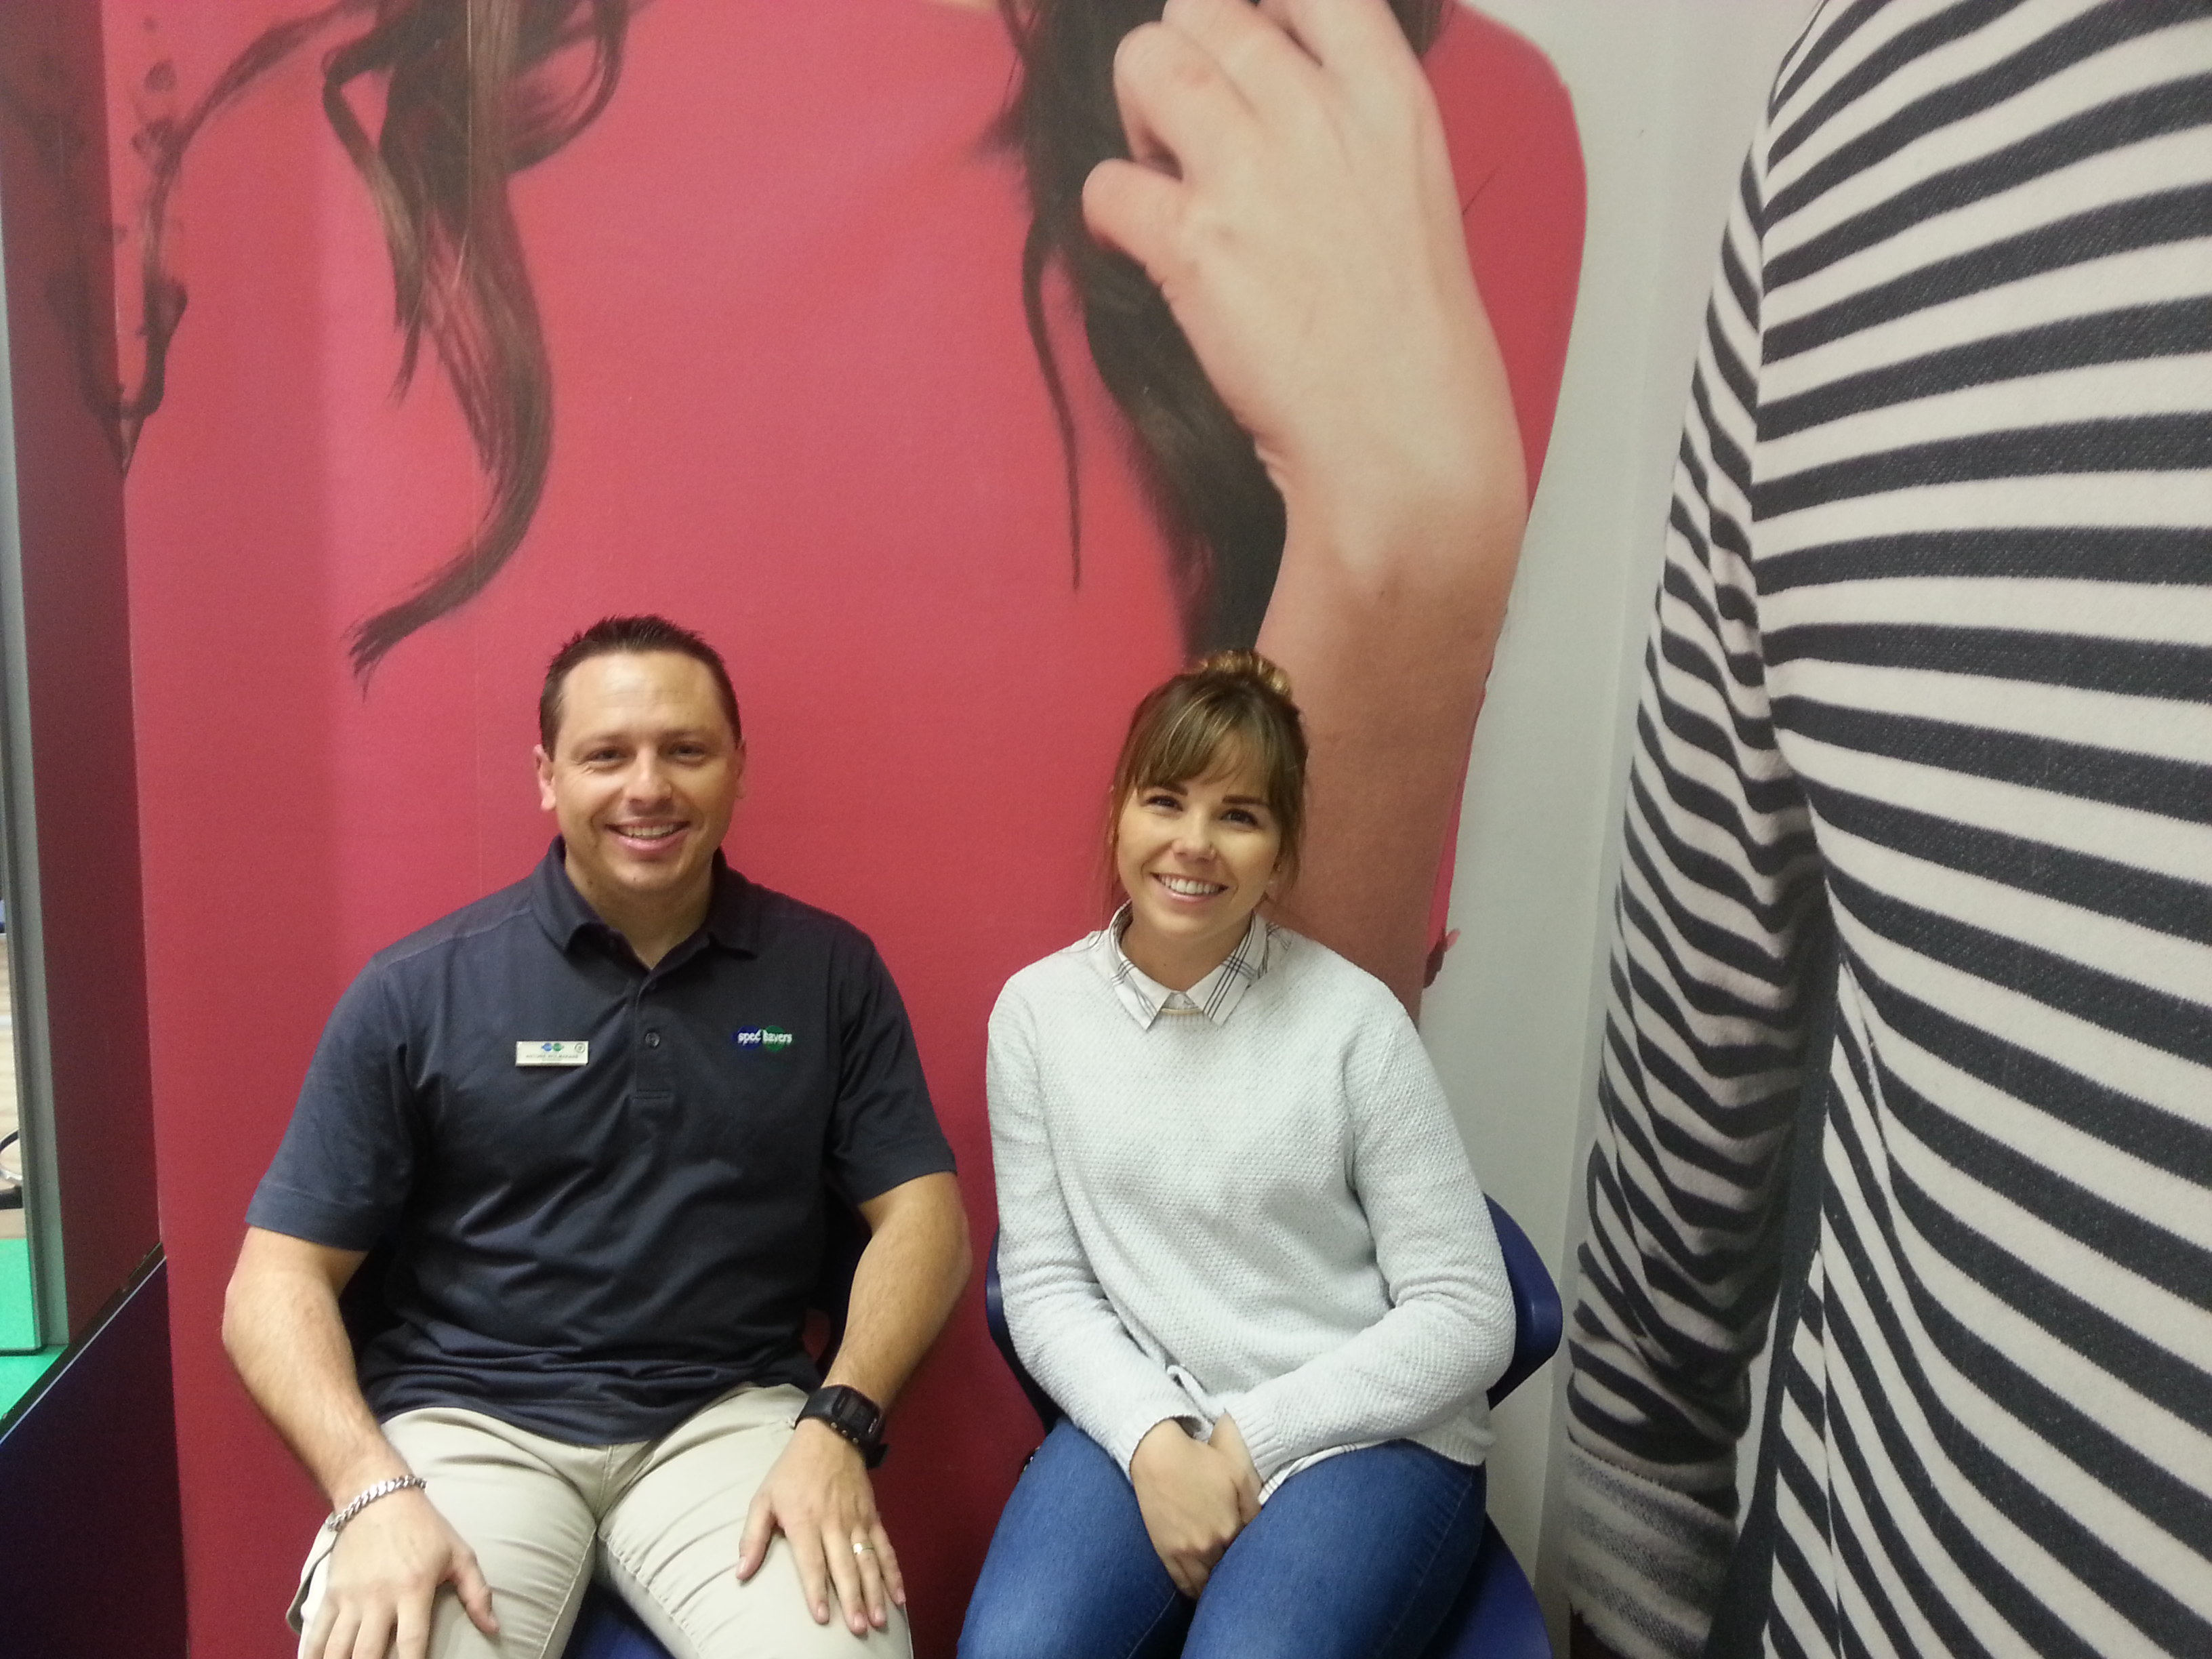 Franchisee/Optometrist Antonie Wolmarans and Optometrist Sharlize Potgieter sitting in the waiting area